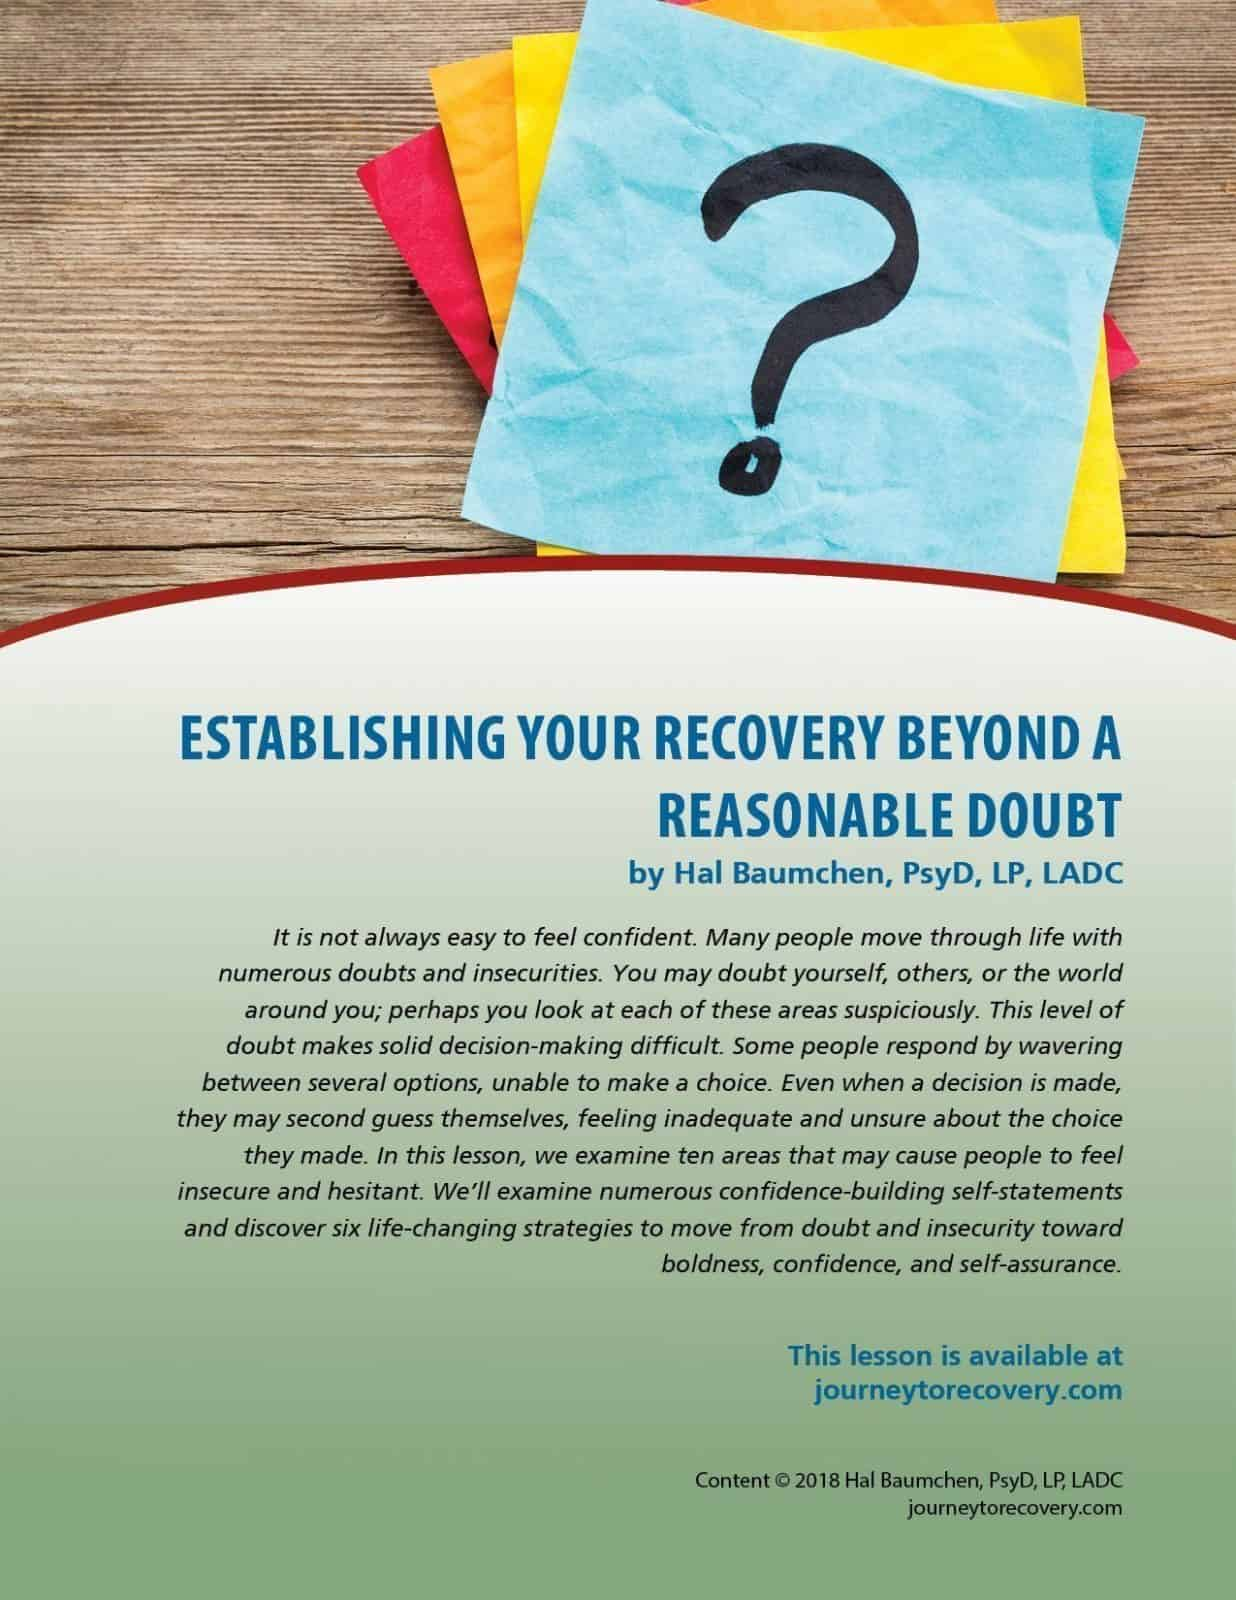 Establishing Your Recovery Beyond a Reasonable Doubt (COD Lesson)